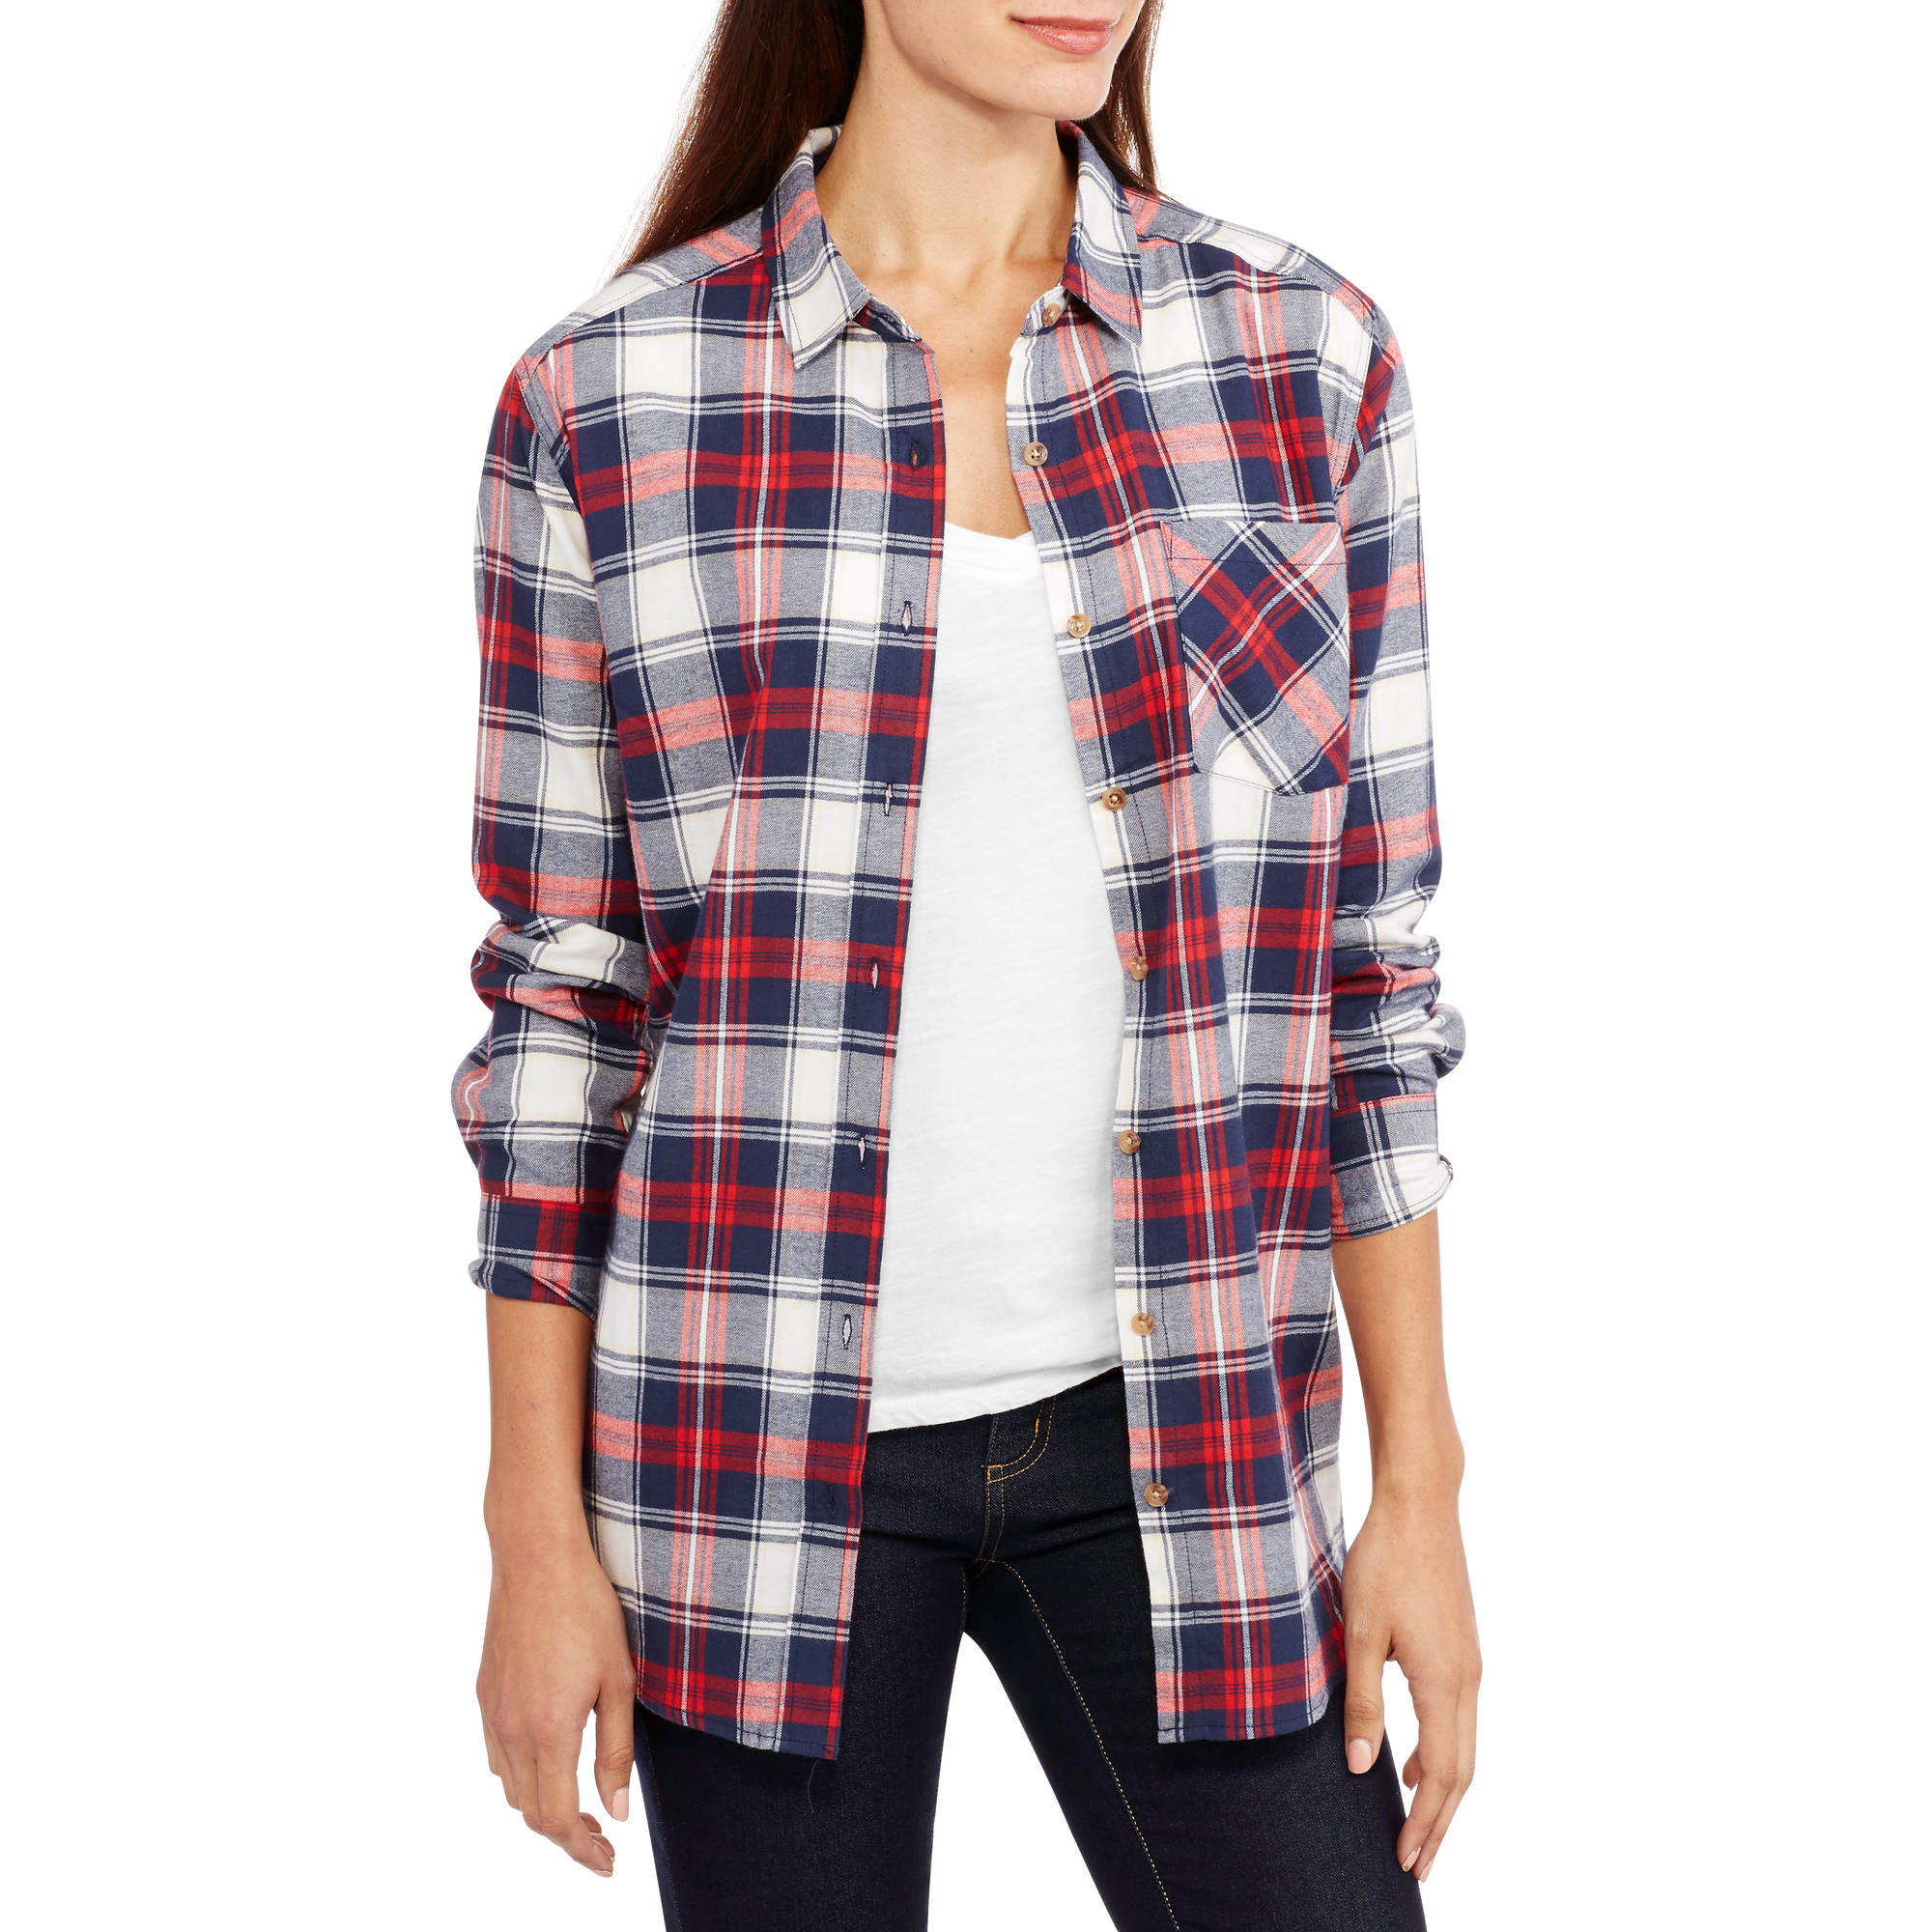 Womens Check Shirt